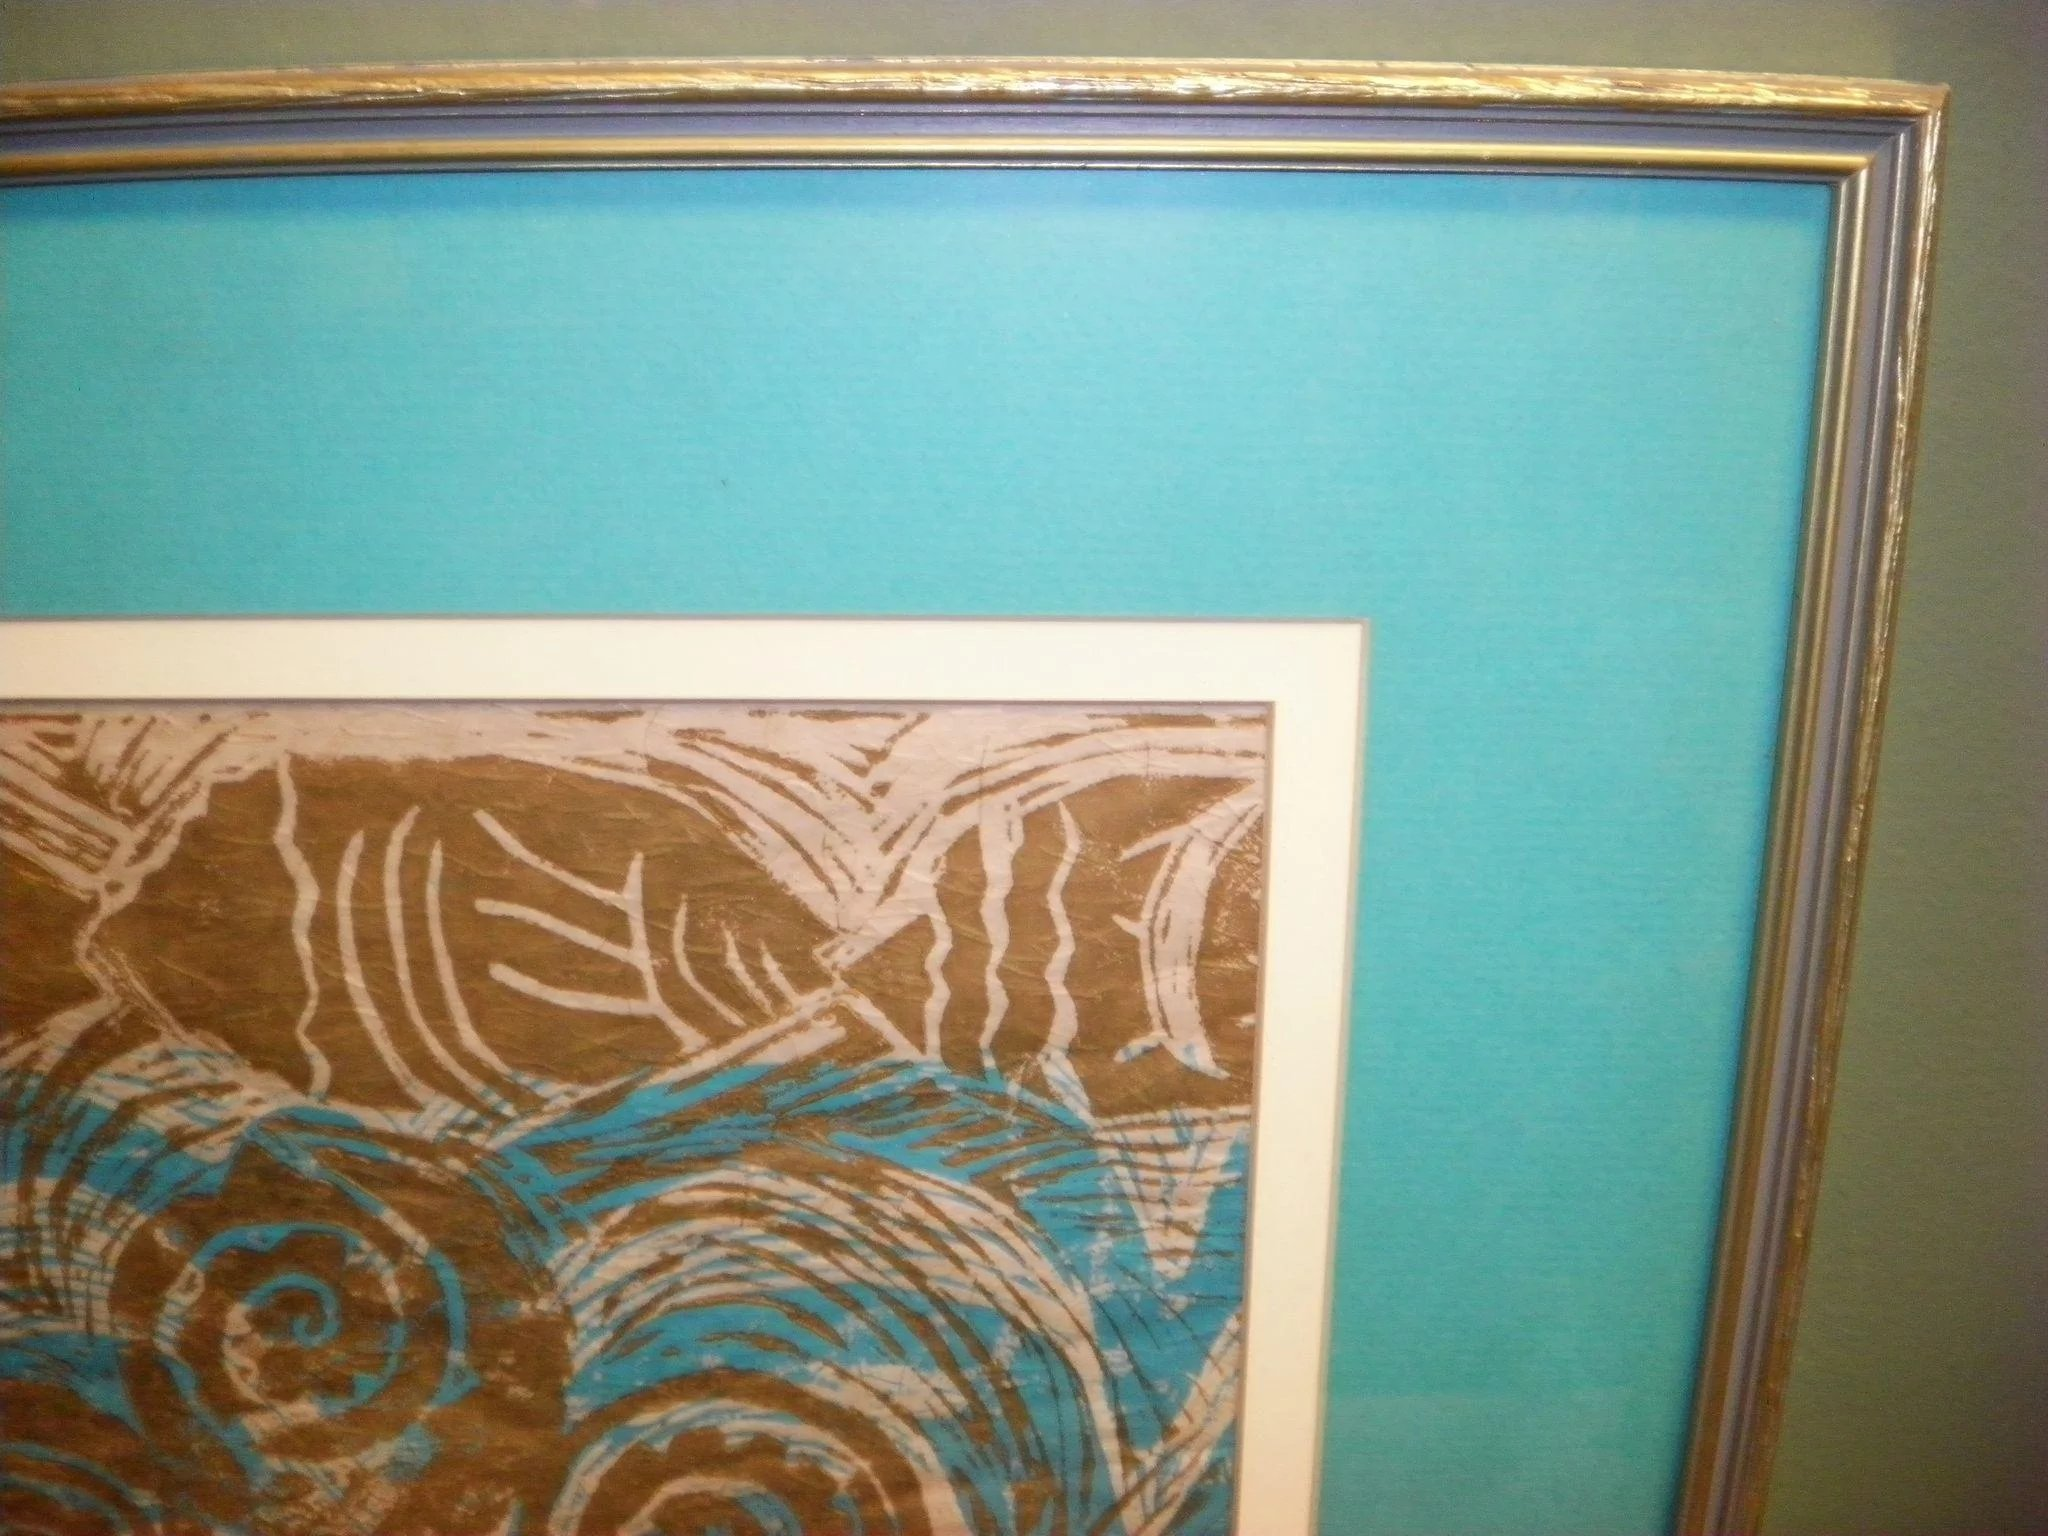 Delores White Matted And Framed Art Print Cameo Antique